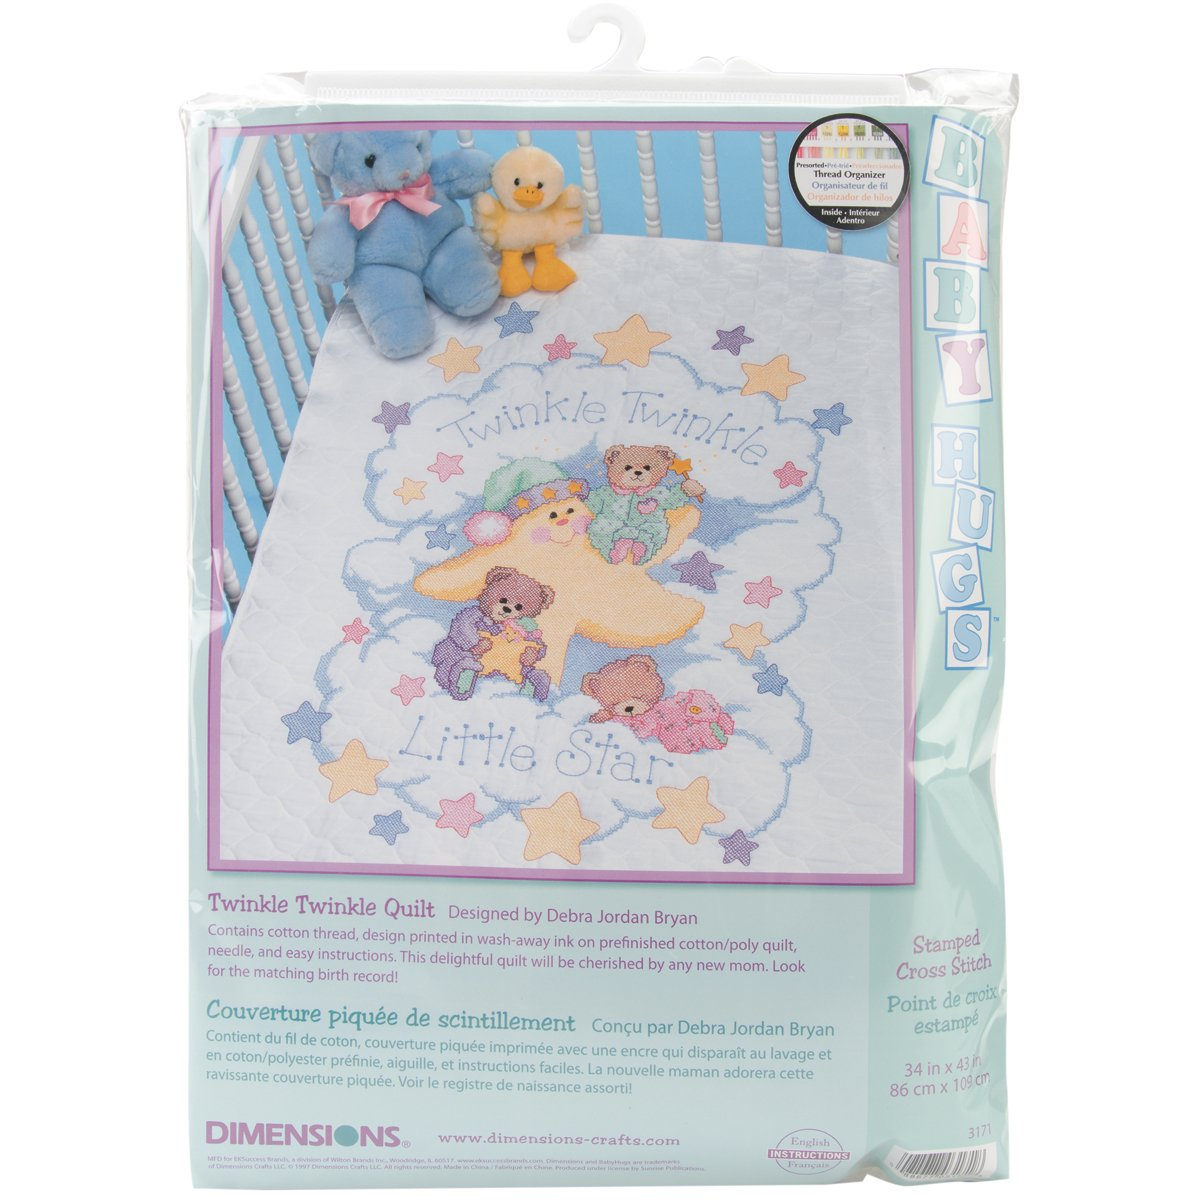 Brand New Twinkle Twinkle Quilt Stamped Cross Stitch Kit-34''''X43'''' Brand New by M1N4B6